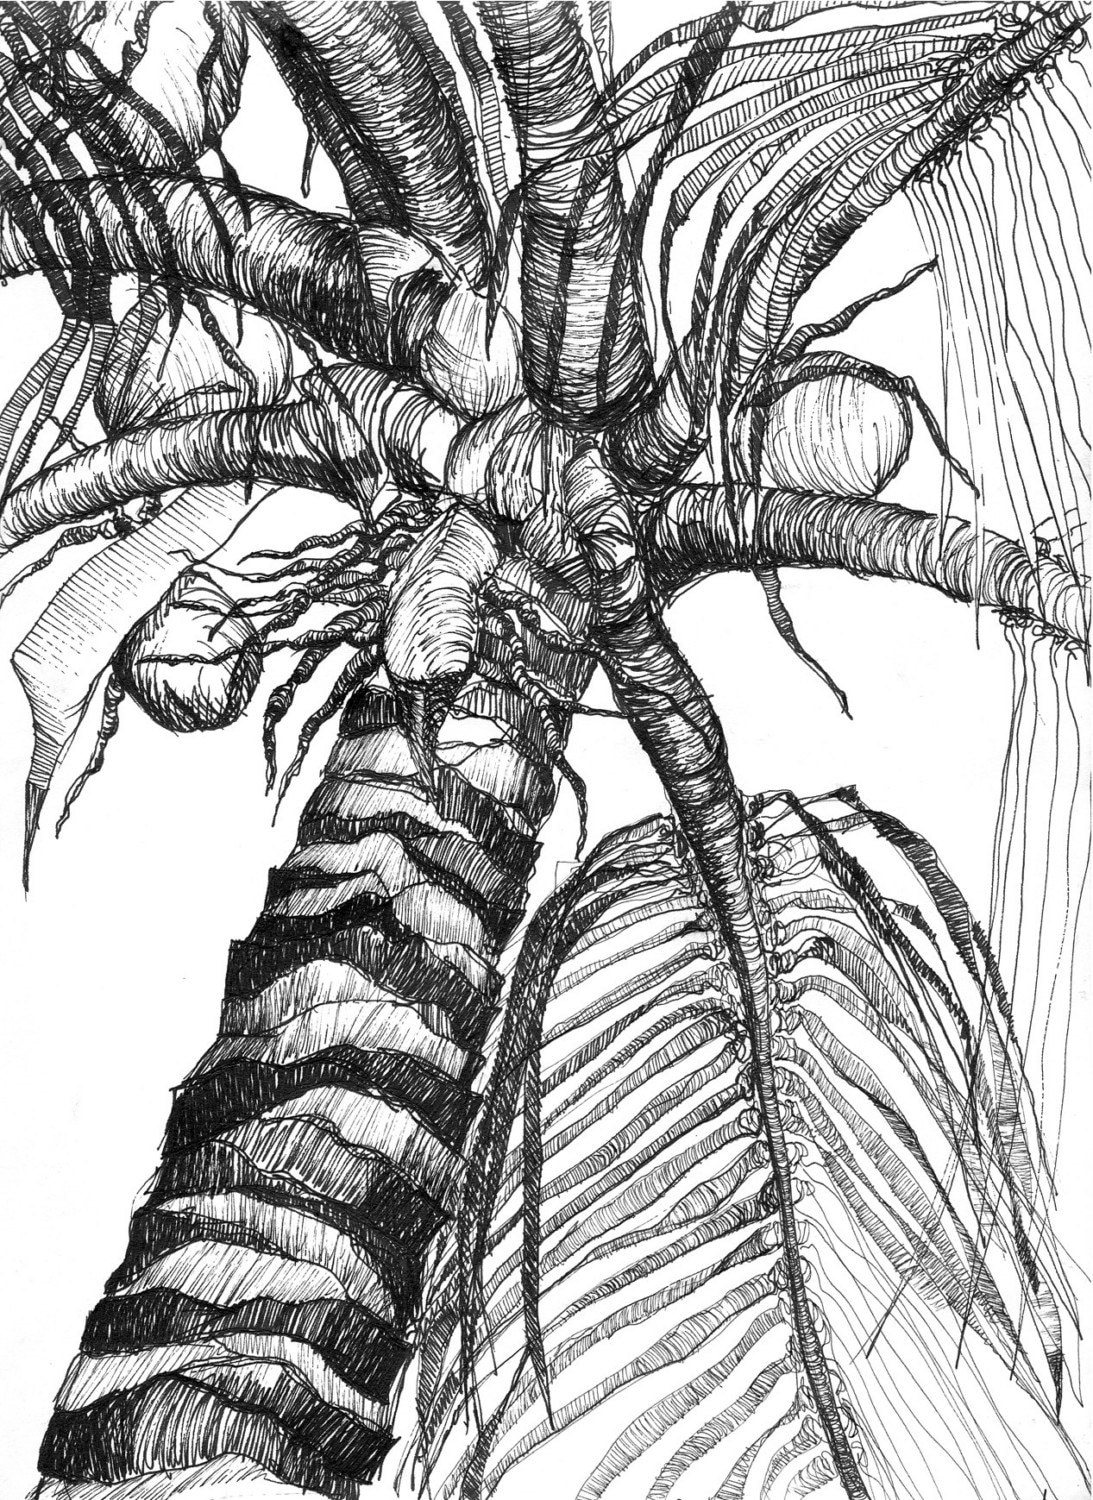 Art Pen and Ink Drawing Tropical Palm Tree with Coconuts